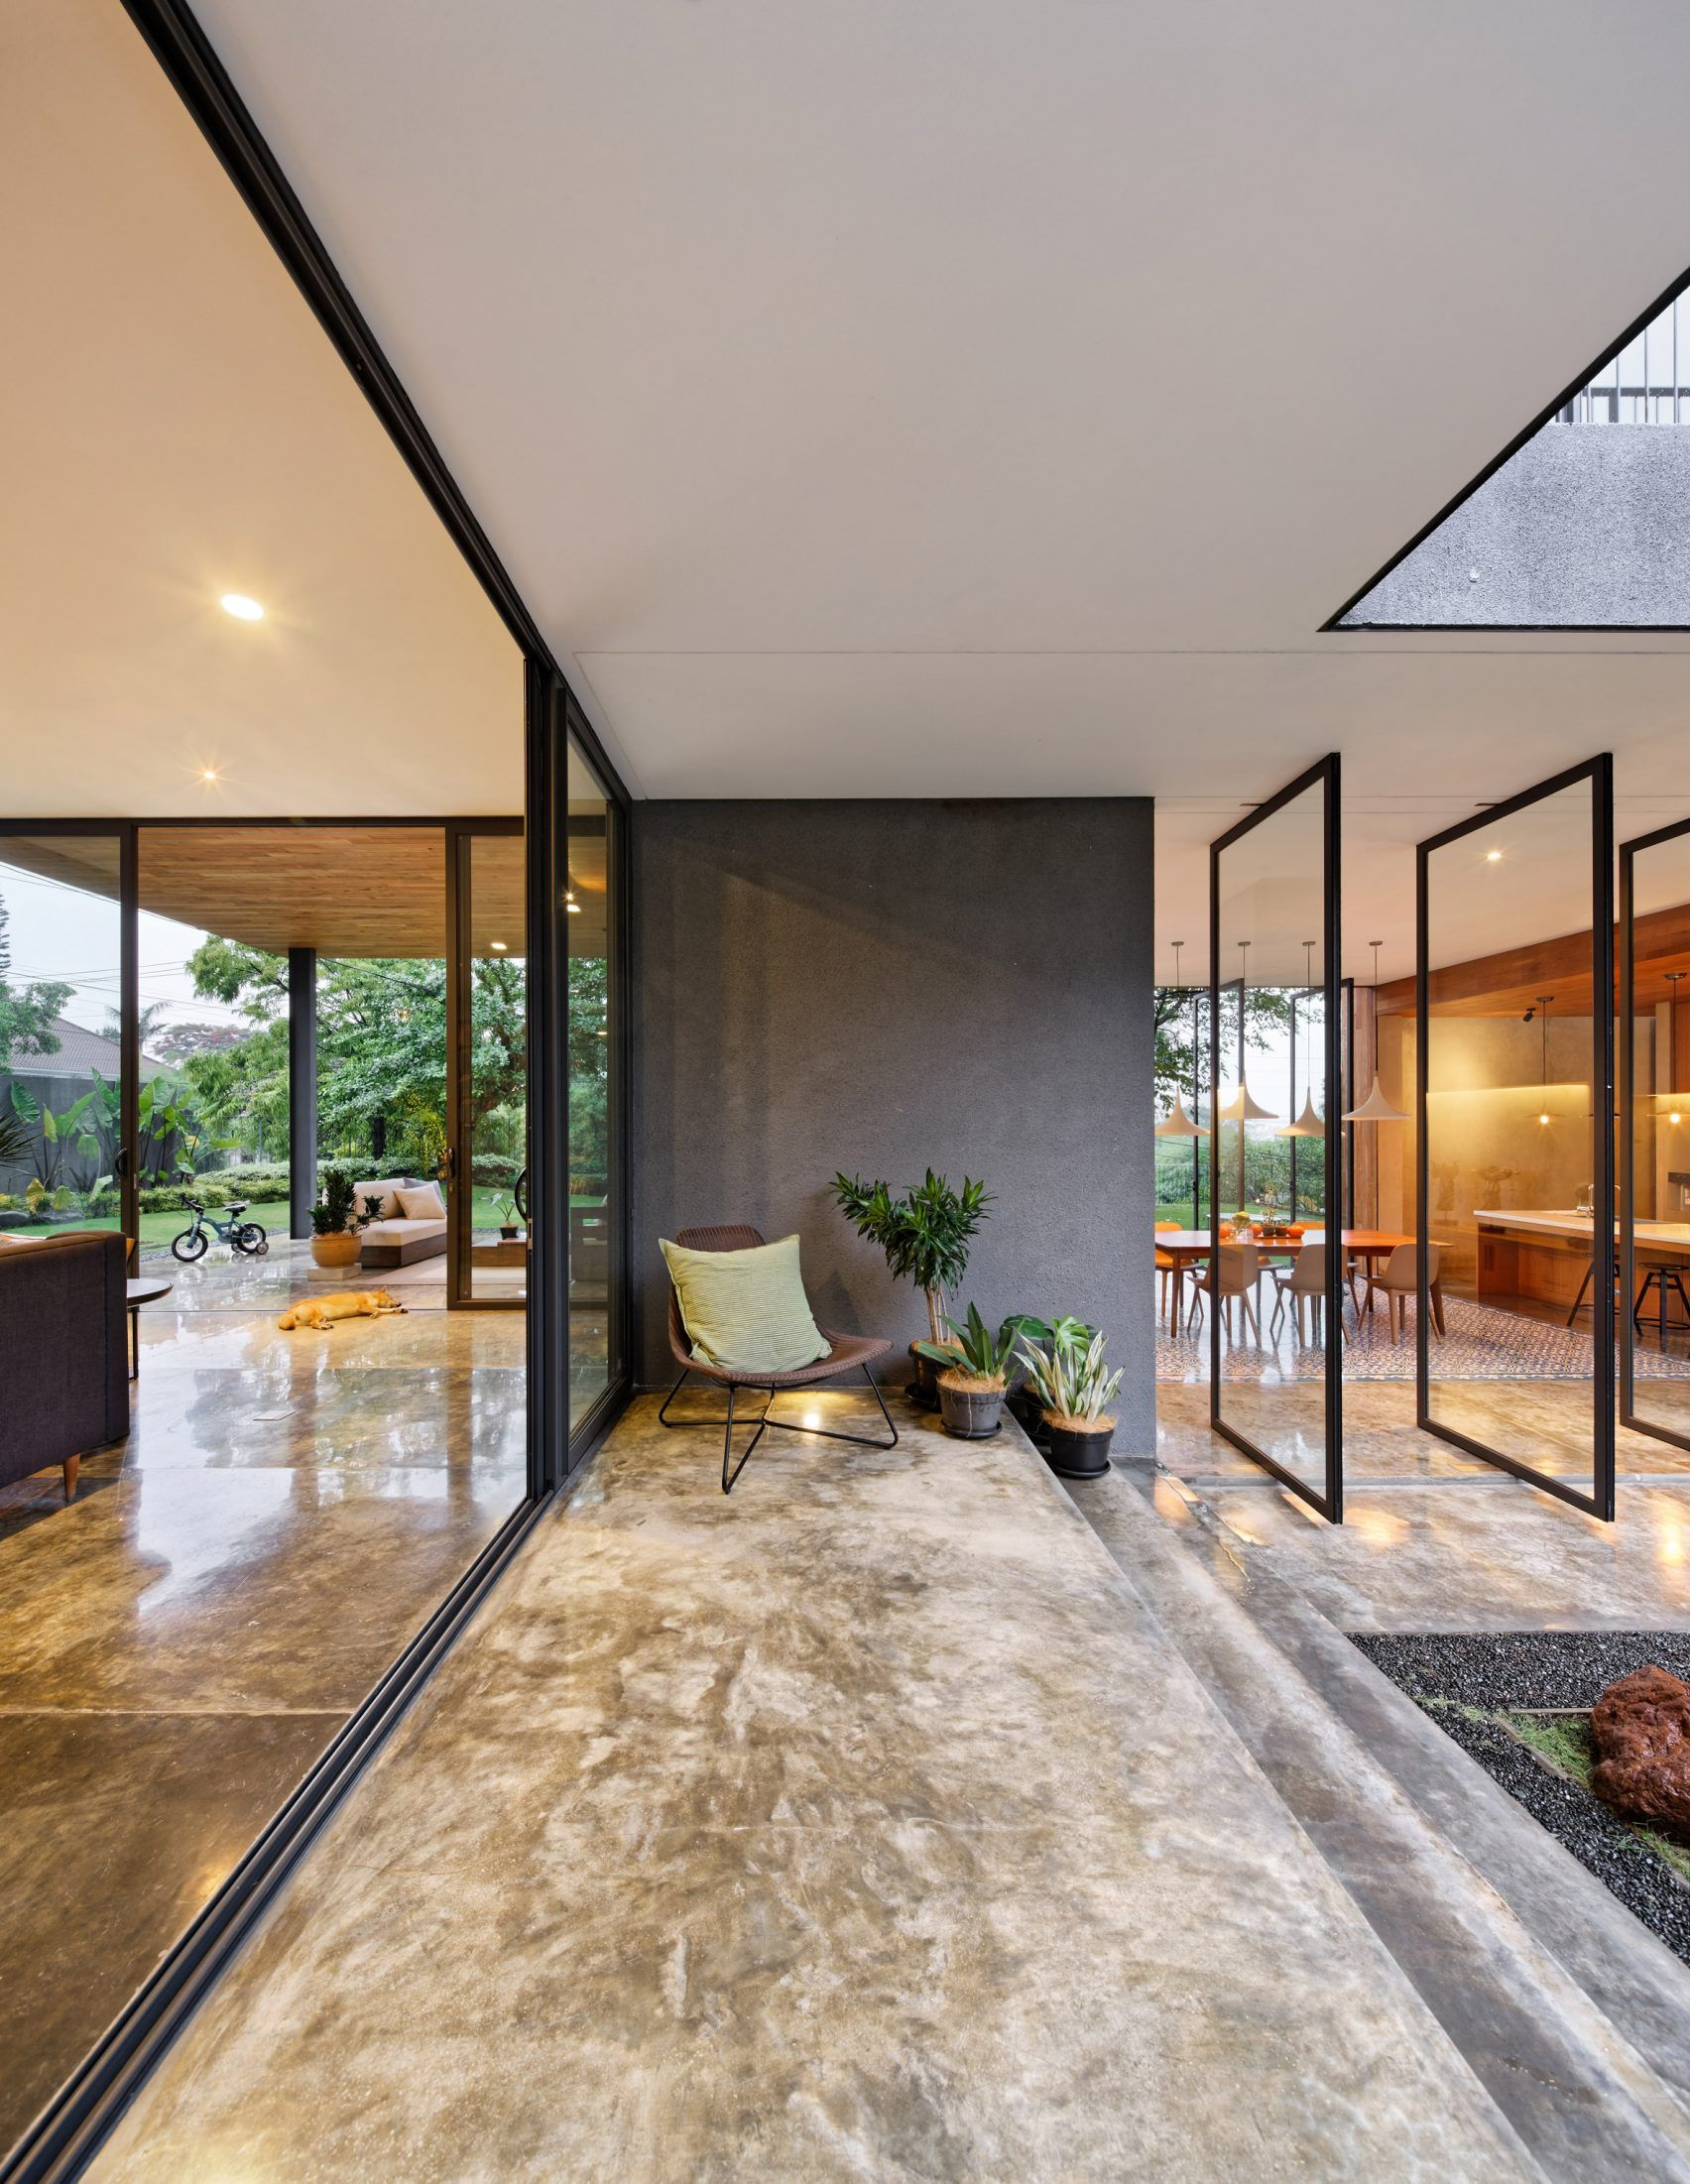 House Of Inside And Outside By Tamara Wibowo Architects House